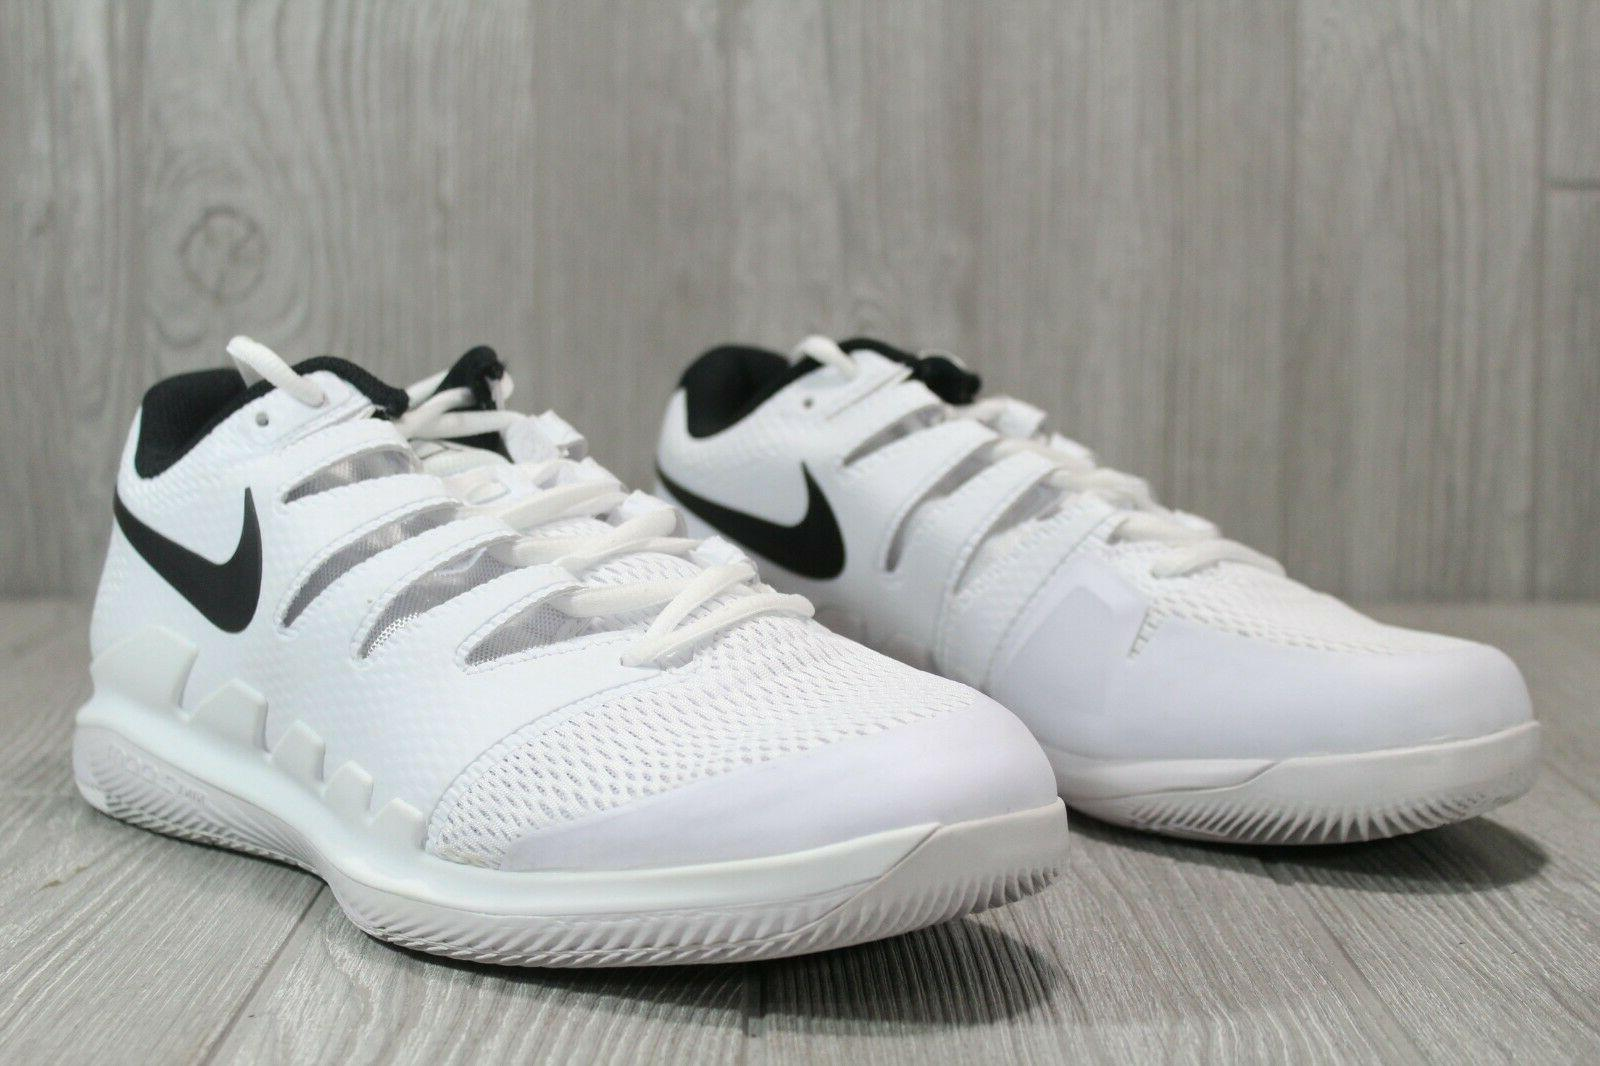 50 Zoom Shoes White Black AH 9066-101 Size